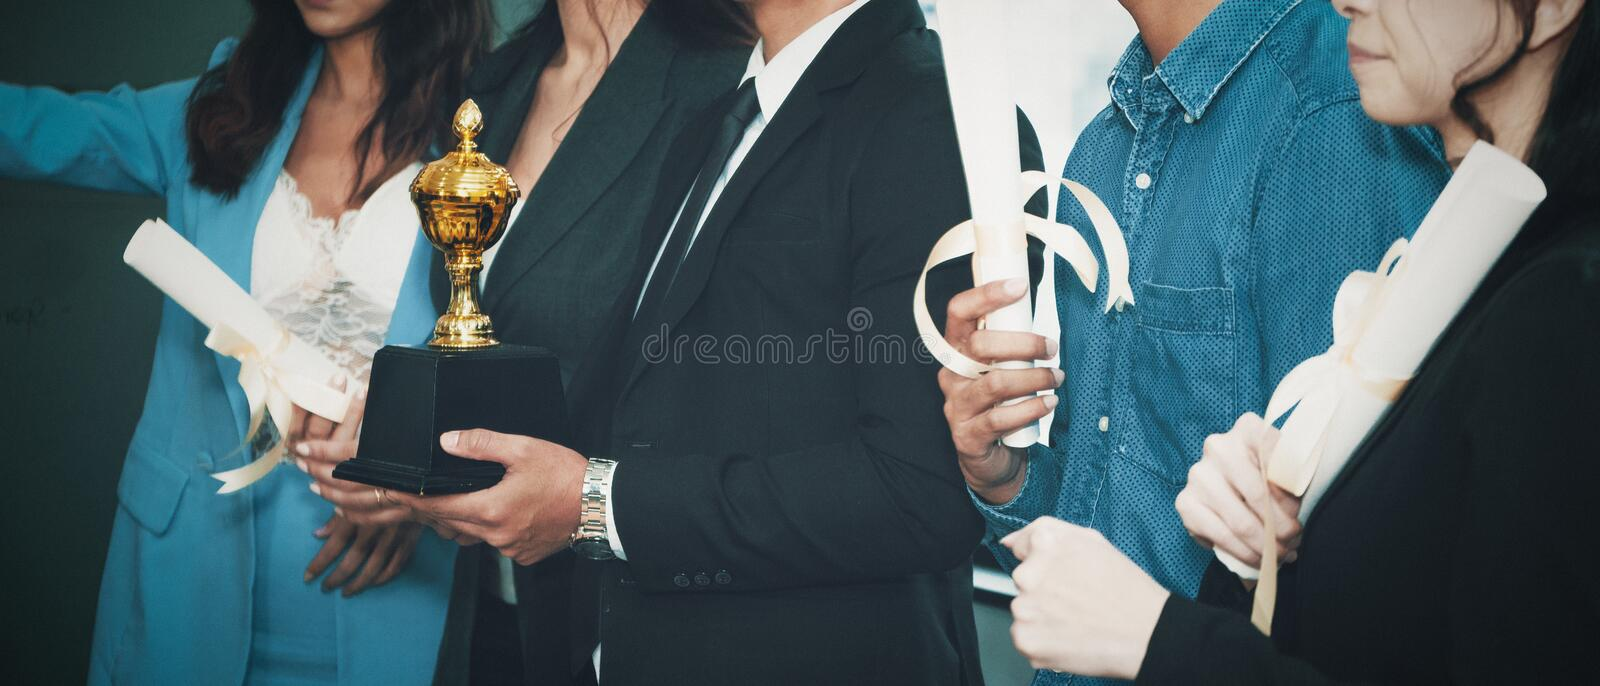 Business background of business people standing tohetger with trophy and certificate awards on hand.  royalty free stock photo